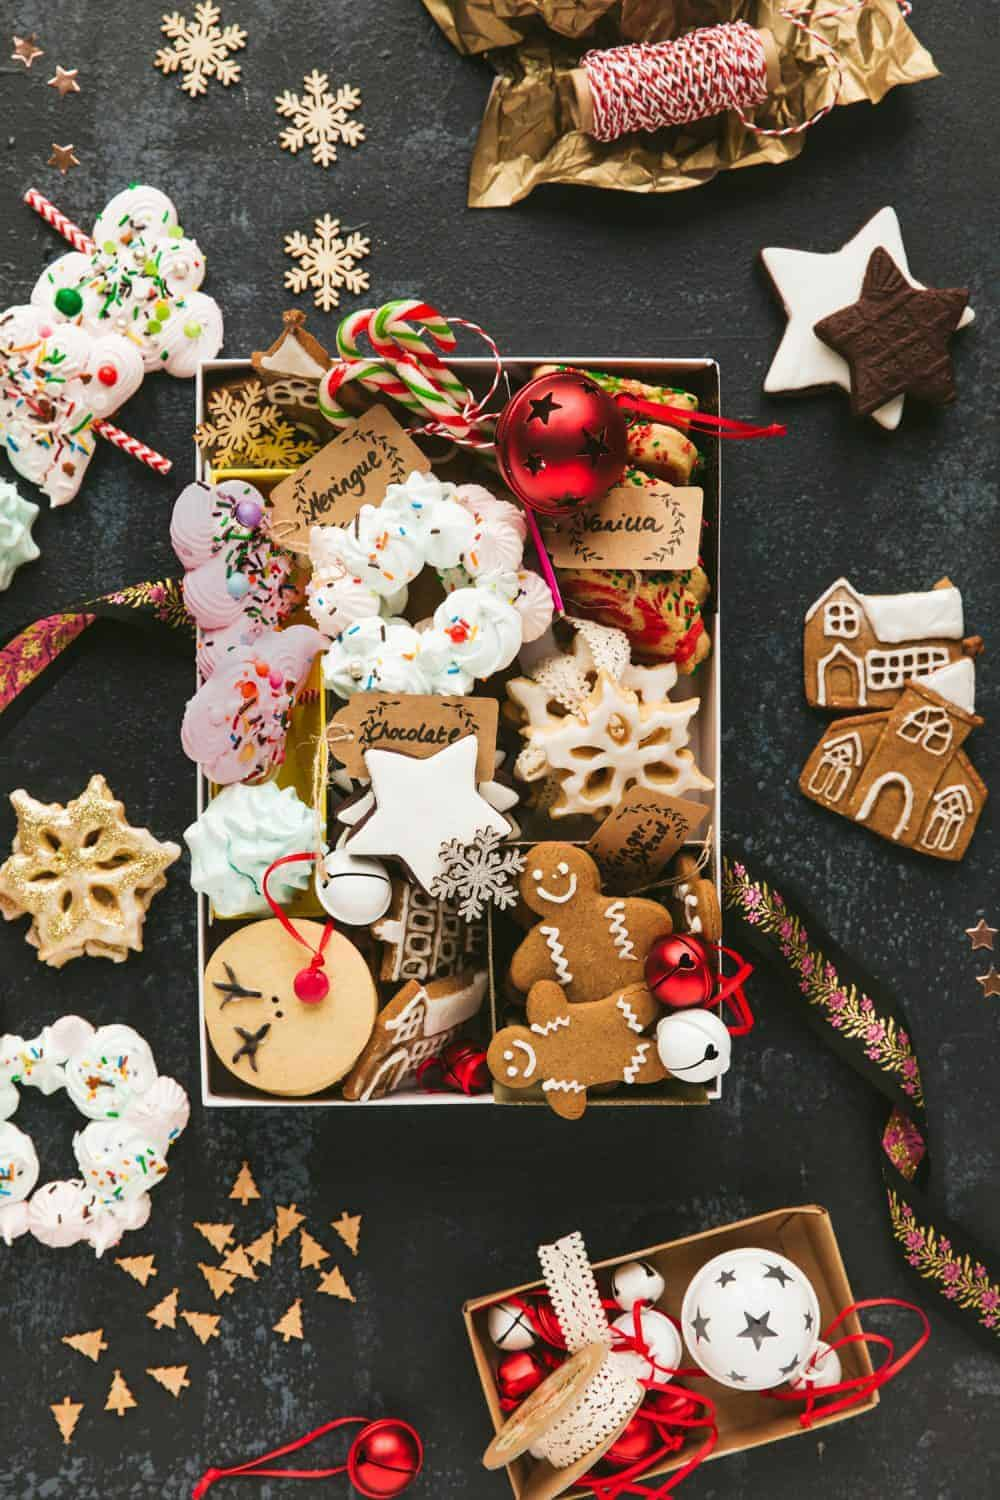 A christmas cookie gift box containing a variety of biscuits and cookies.